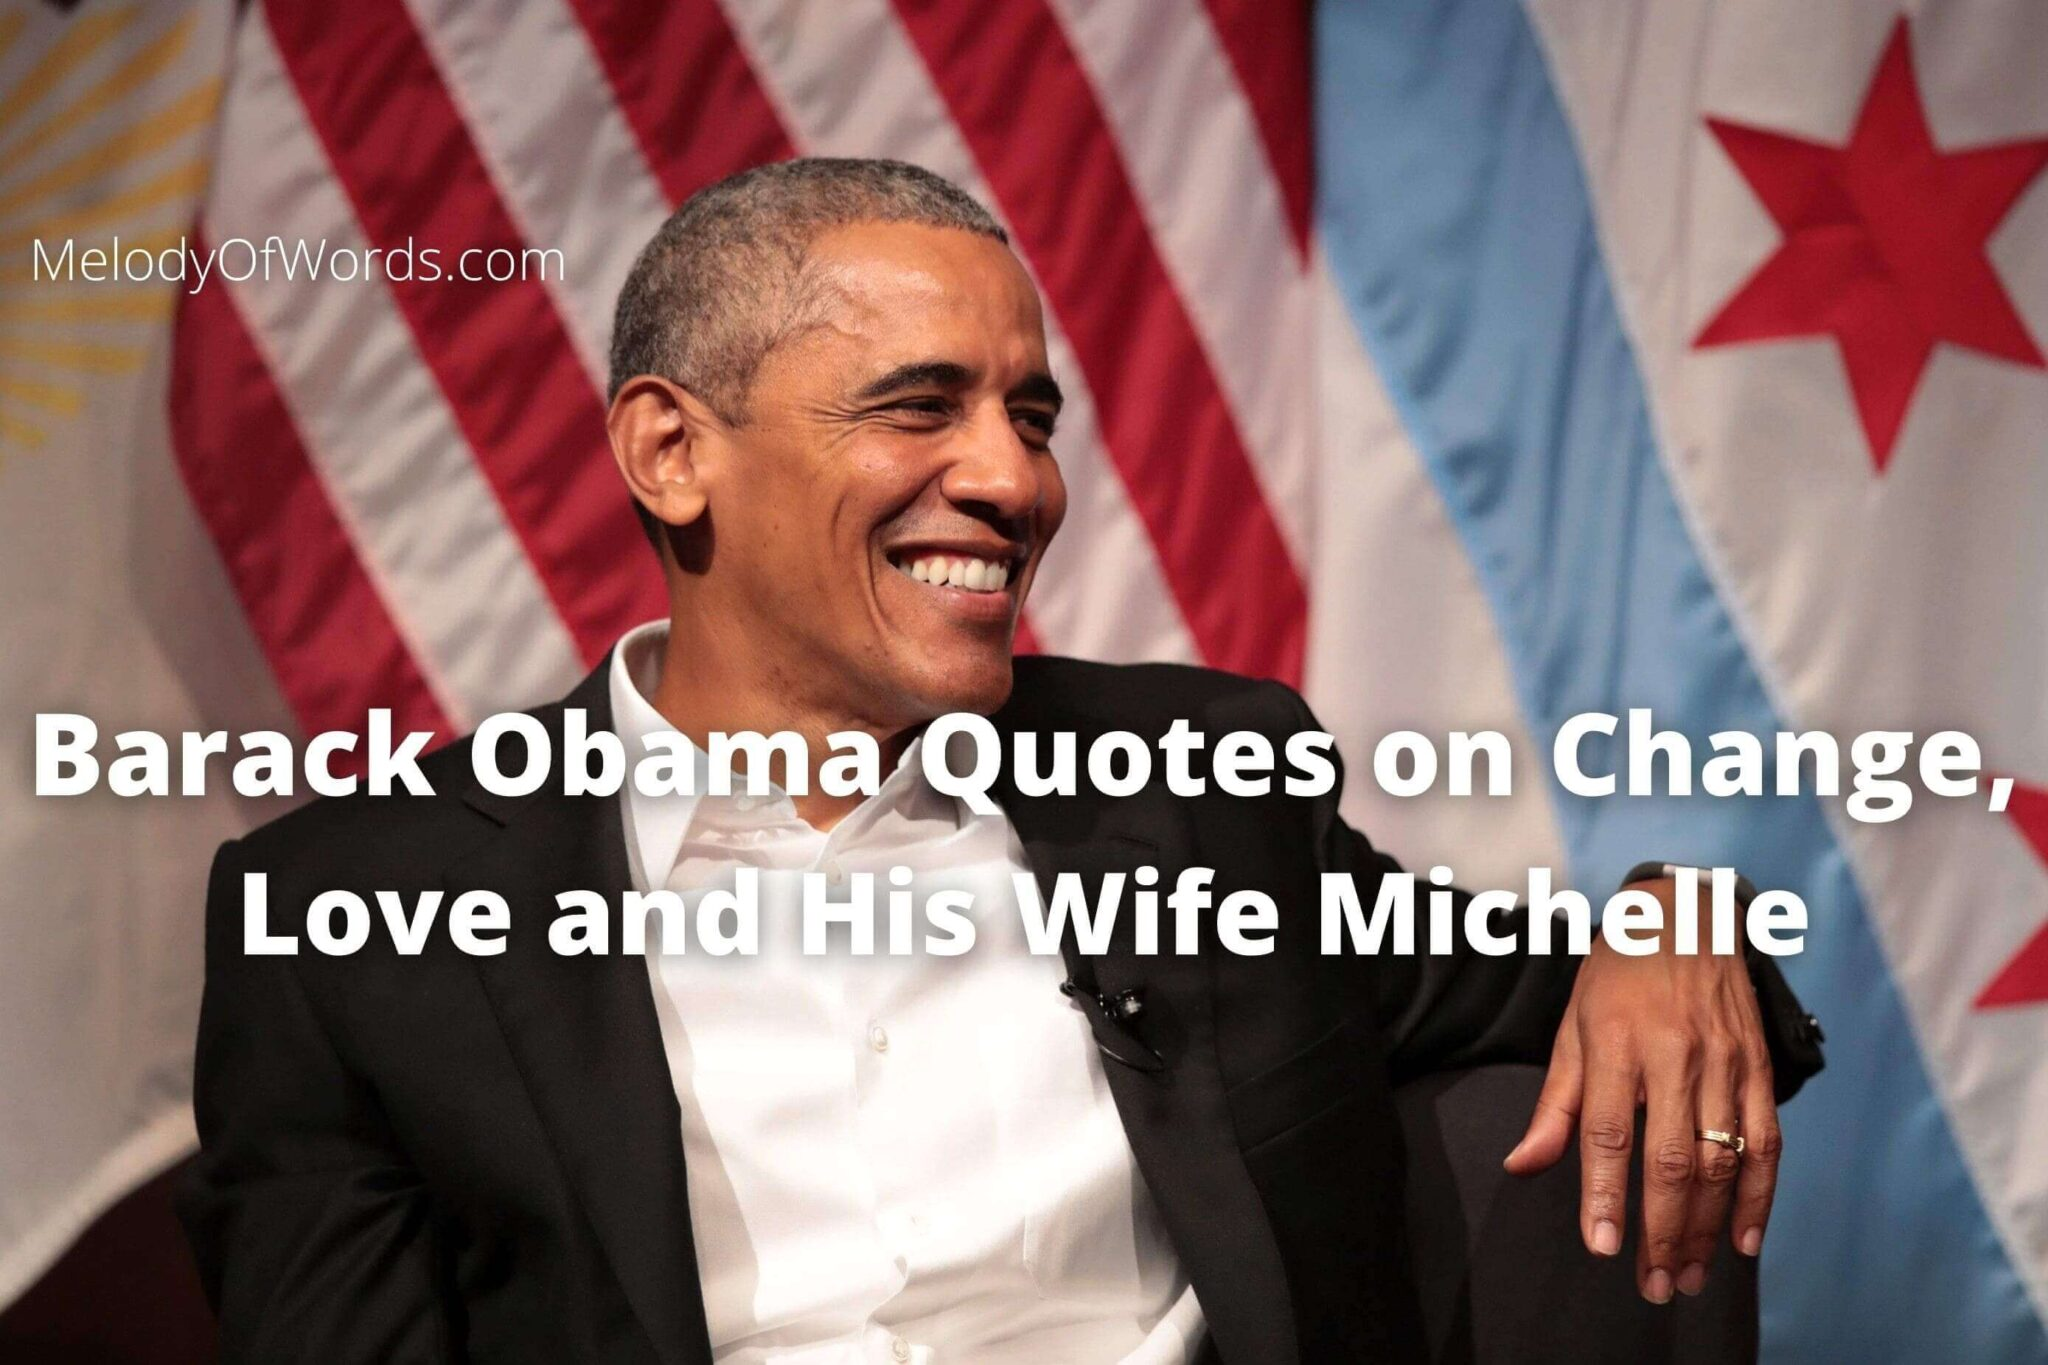 Barack Obama Quotes on Change, Love and His Wife Michelle